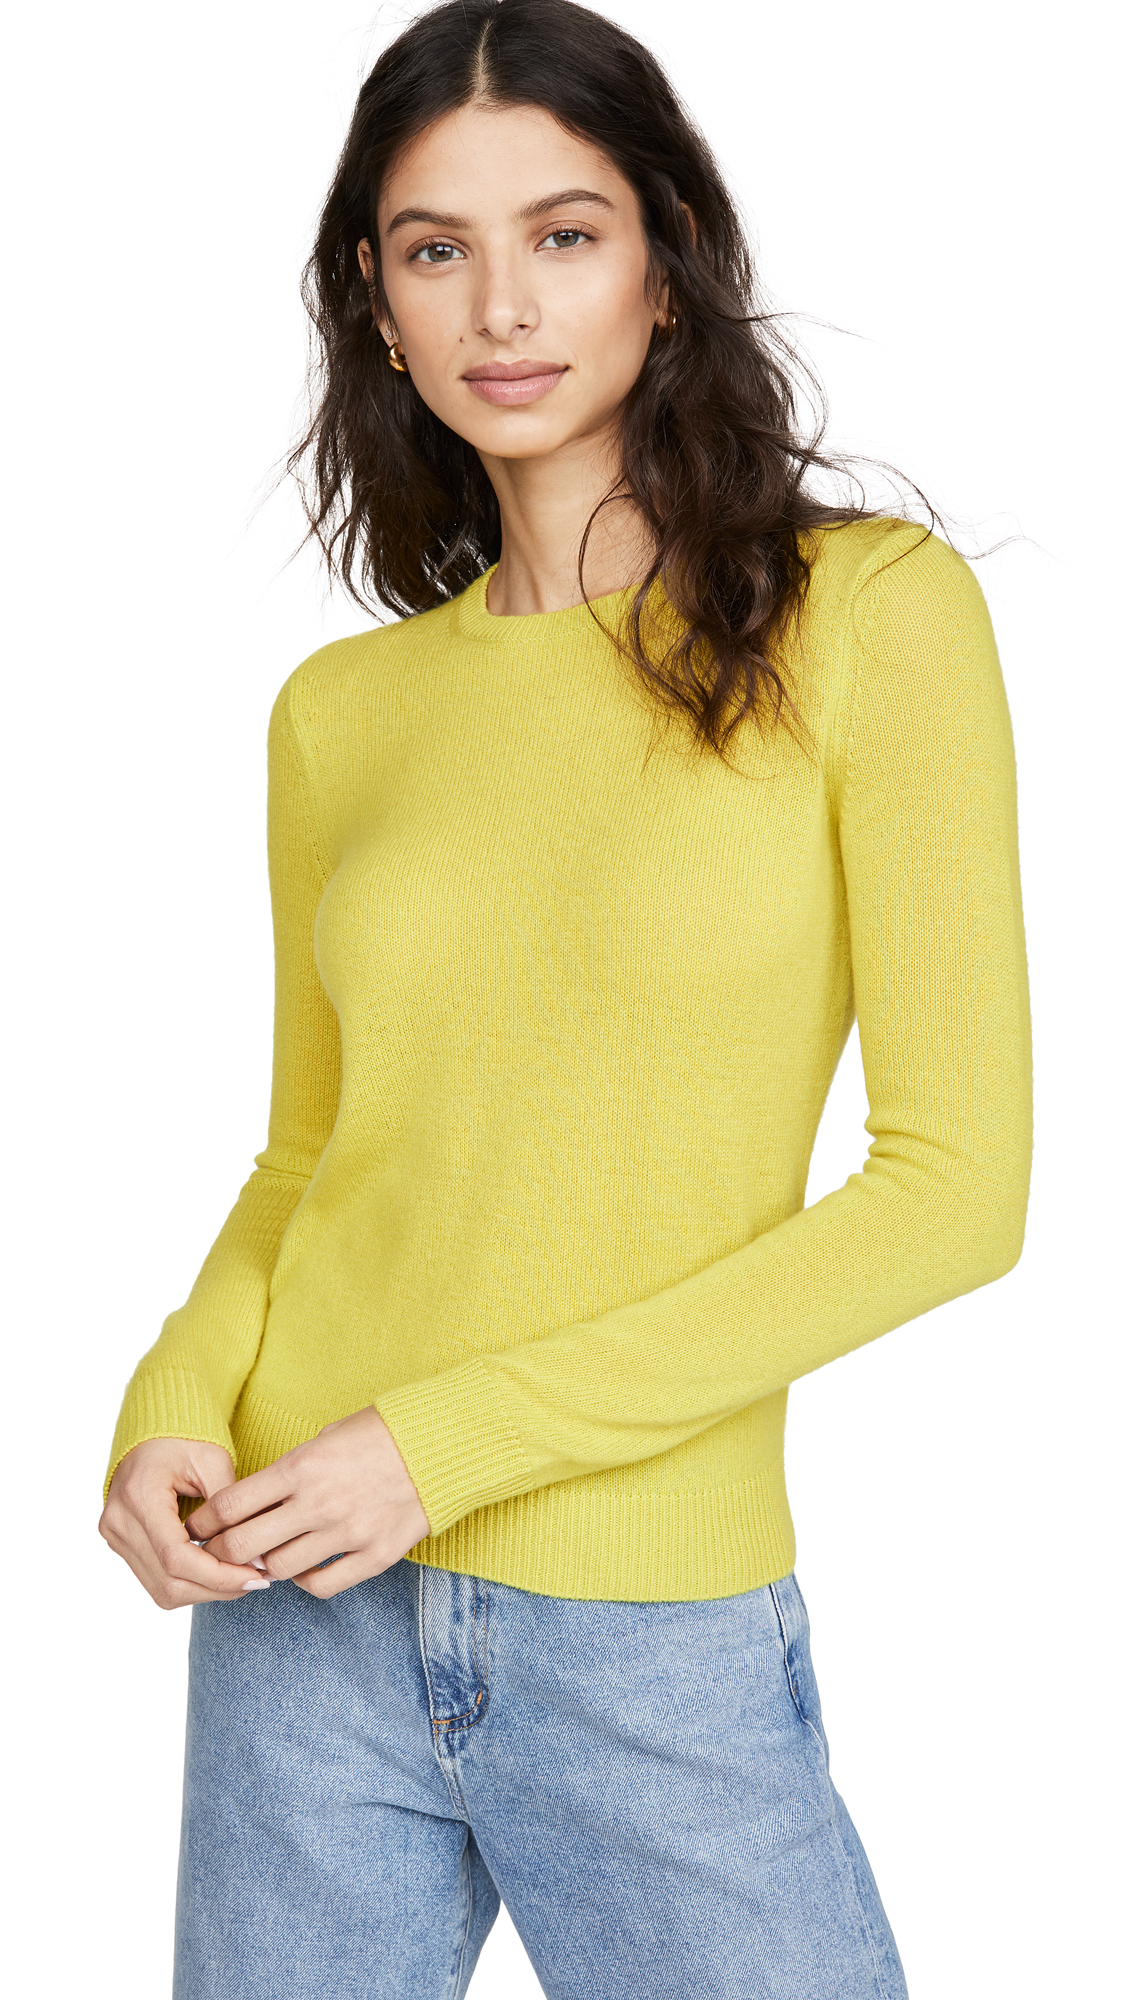 Theory Crew Neck Cashmere Pullover - Bright Lime